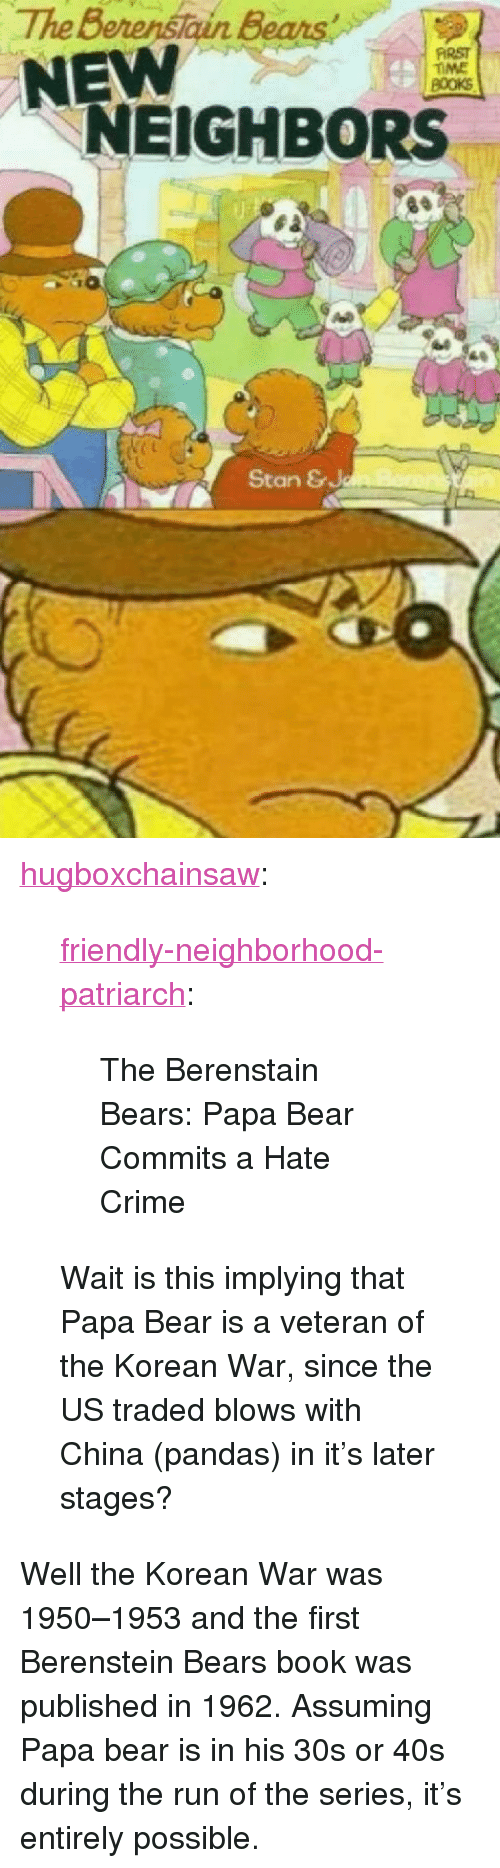 """Berenstain Bears, Crime, and Run: The Berenstain Bears  NEW  FİRST  TIME  NEIGHBORS  4  Stan & <p><a href=""""https://hugboxchainsaw.tumblr.com/post/174255281867/friendly-neighborhood-patriarch-the-berenstain"""" class=""""tumblr_blog"""">hugboxchainsaw</a>:</p>  <blockquote><p><a href=""""http://friendly-neighborhood-patriarch.tumblr.com/post/173865249382/the-berenstain-bears-papa-bear-commits-a-hate"""" class=""""tumblr_blog"""">friendly-neighborhood-patriarch</a>:</p> <blockquote><p>The Berenstain Bears: Papa Bear Commits a Hate Crime</p></blockquote> <p>Wait is this implying that Papa Bear is a veteran of the Korean War, since the US traded blows with China (pandas) in it's later stages?</p></blockquote>  <p>Well the Korean War was 1950–1953 and the first Berenstein Bears book was published in 1962. Assuming Papa bear is in his 30s or 40s during the run of the series, it's entirely possible.</p>"""